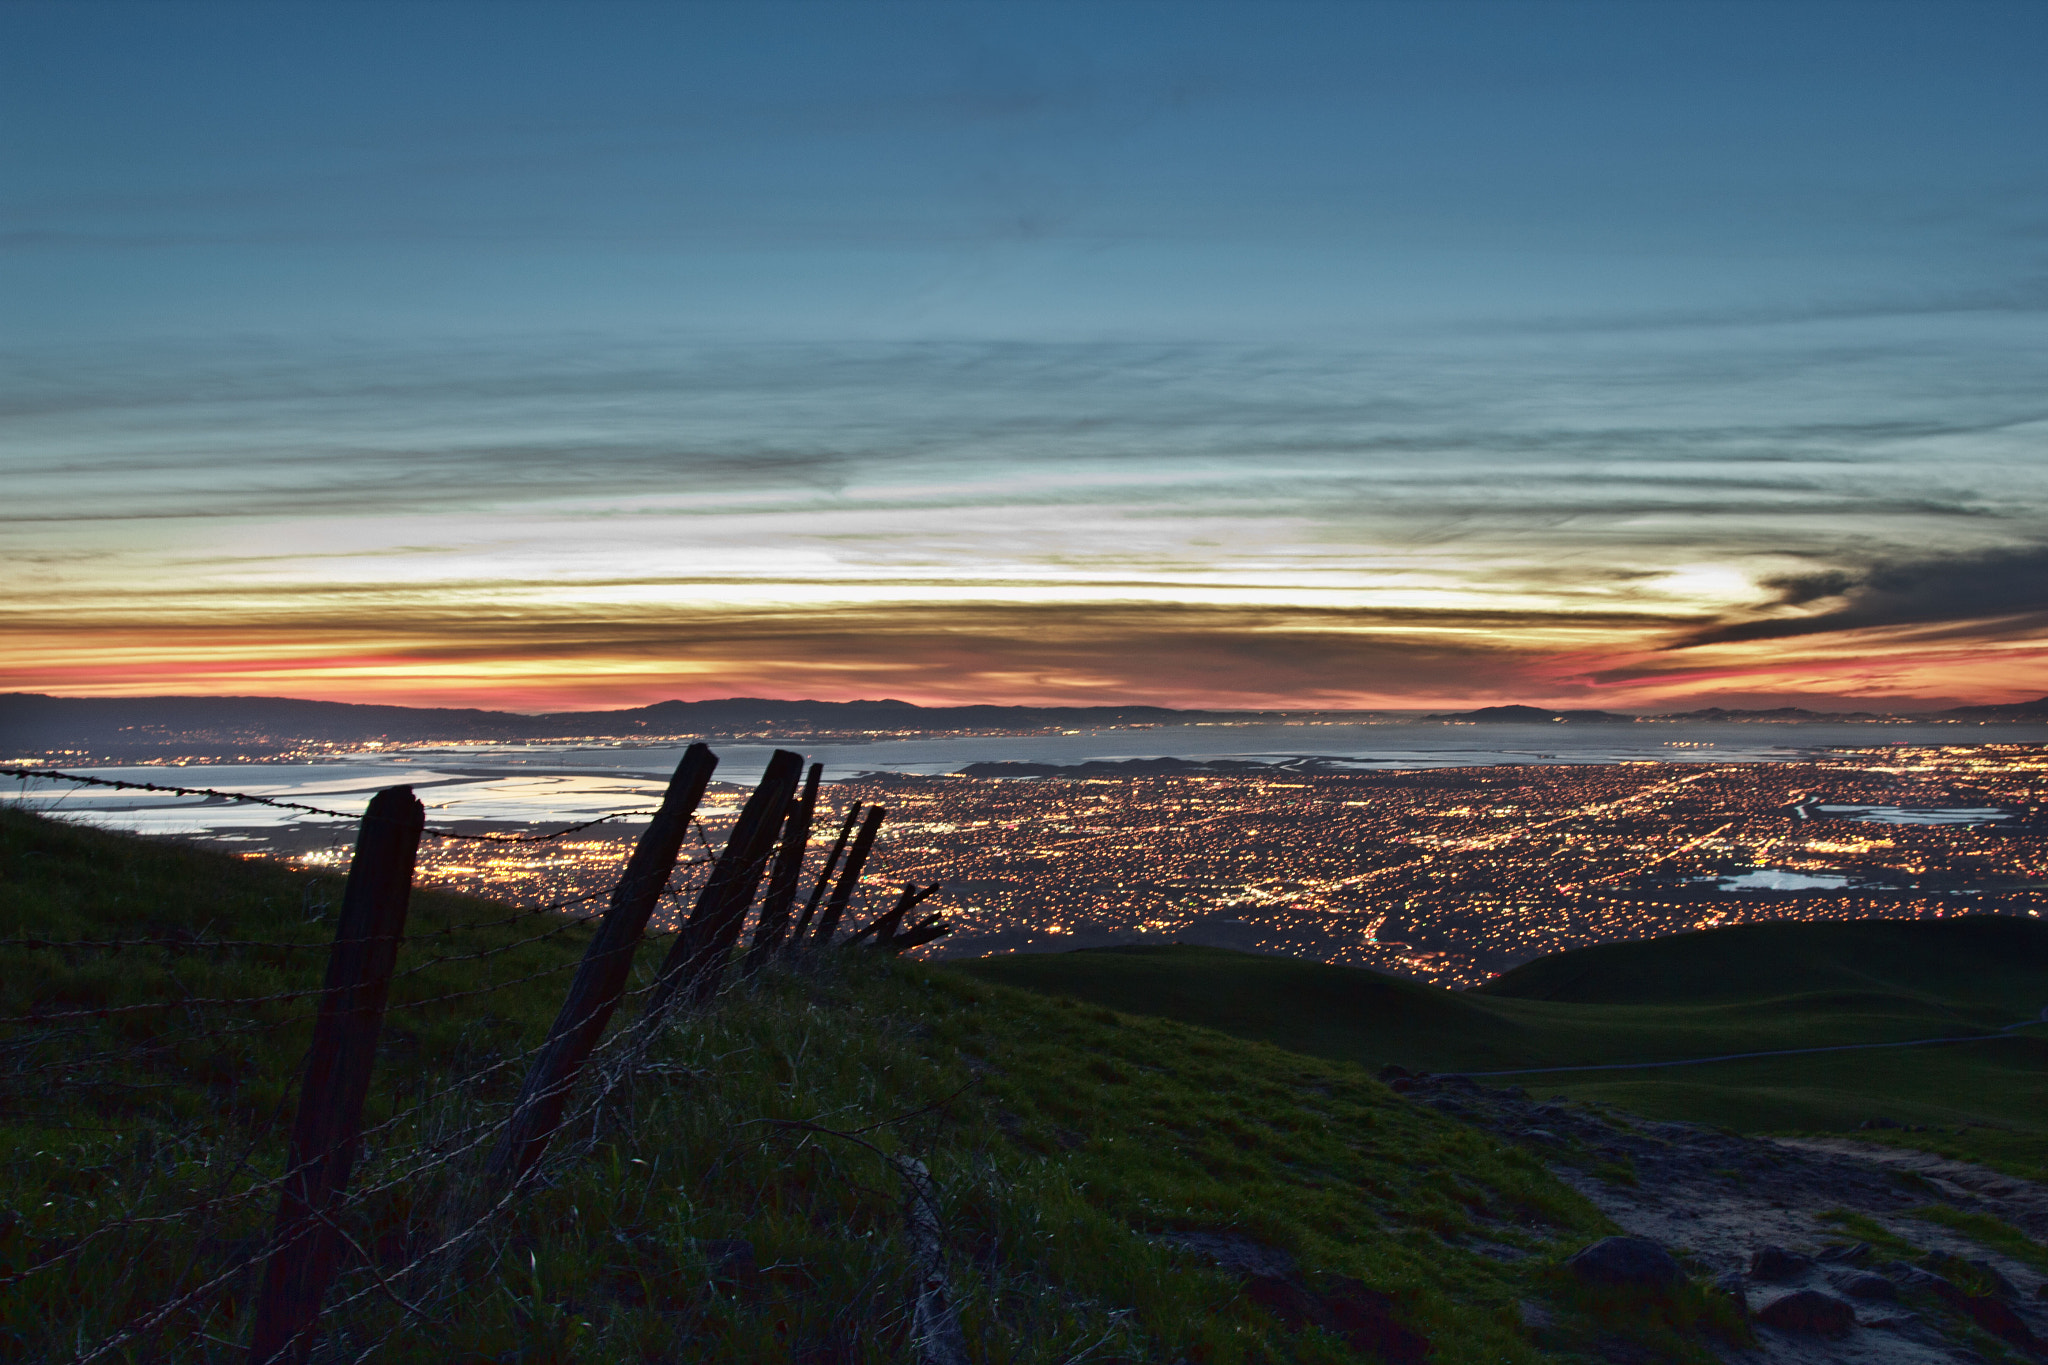 Photograph Sunset Over San Francisco by nick mangiardi on 500px